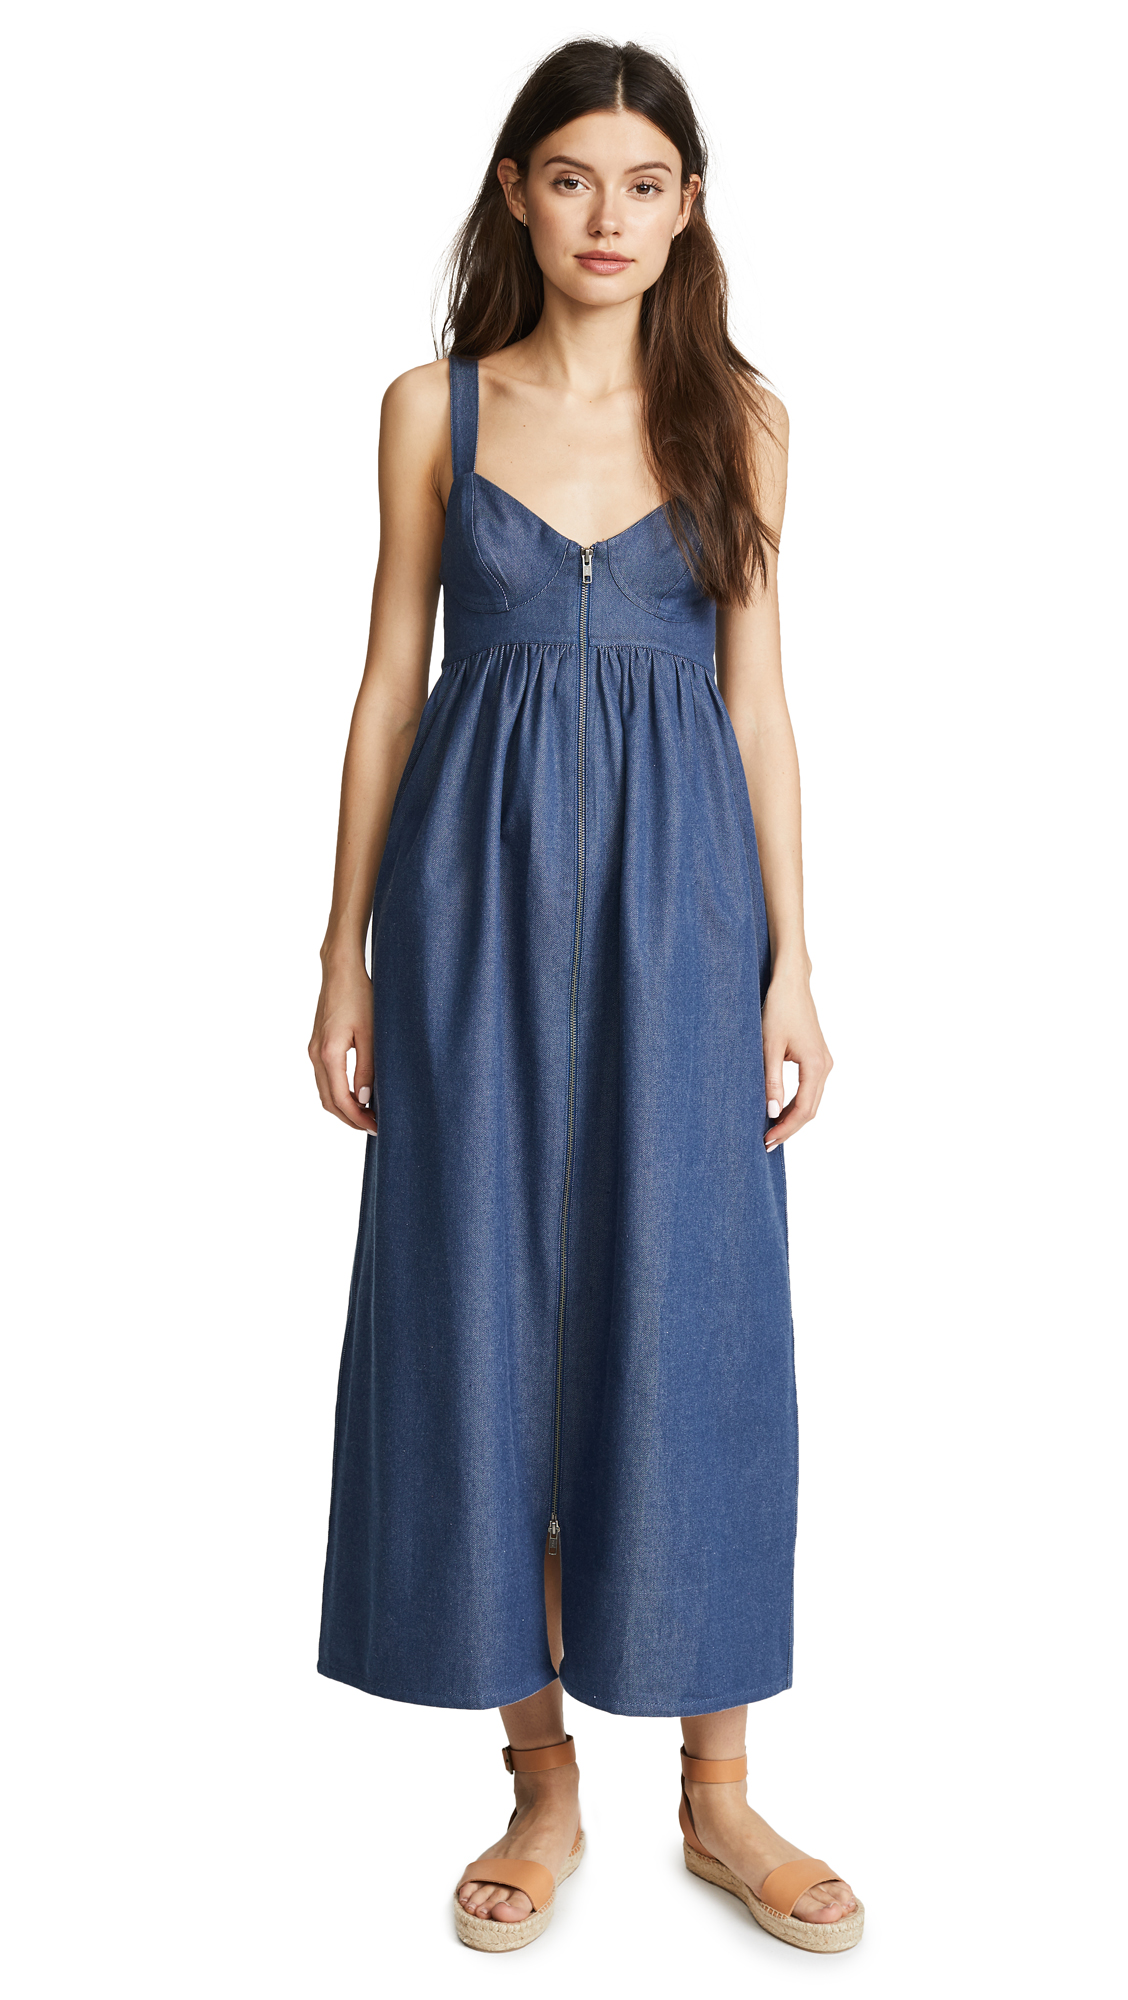 Mara Hoffman Denim Midi Dress In Dark Denim